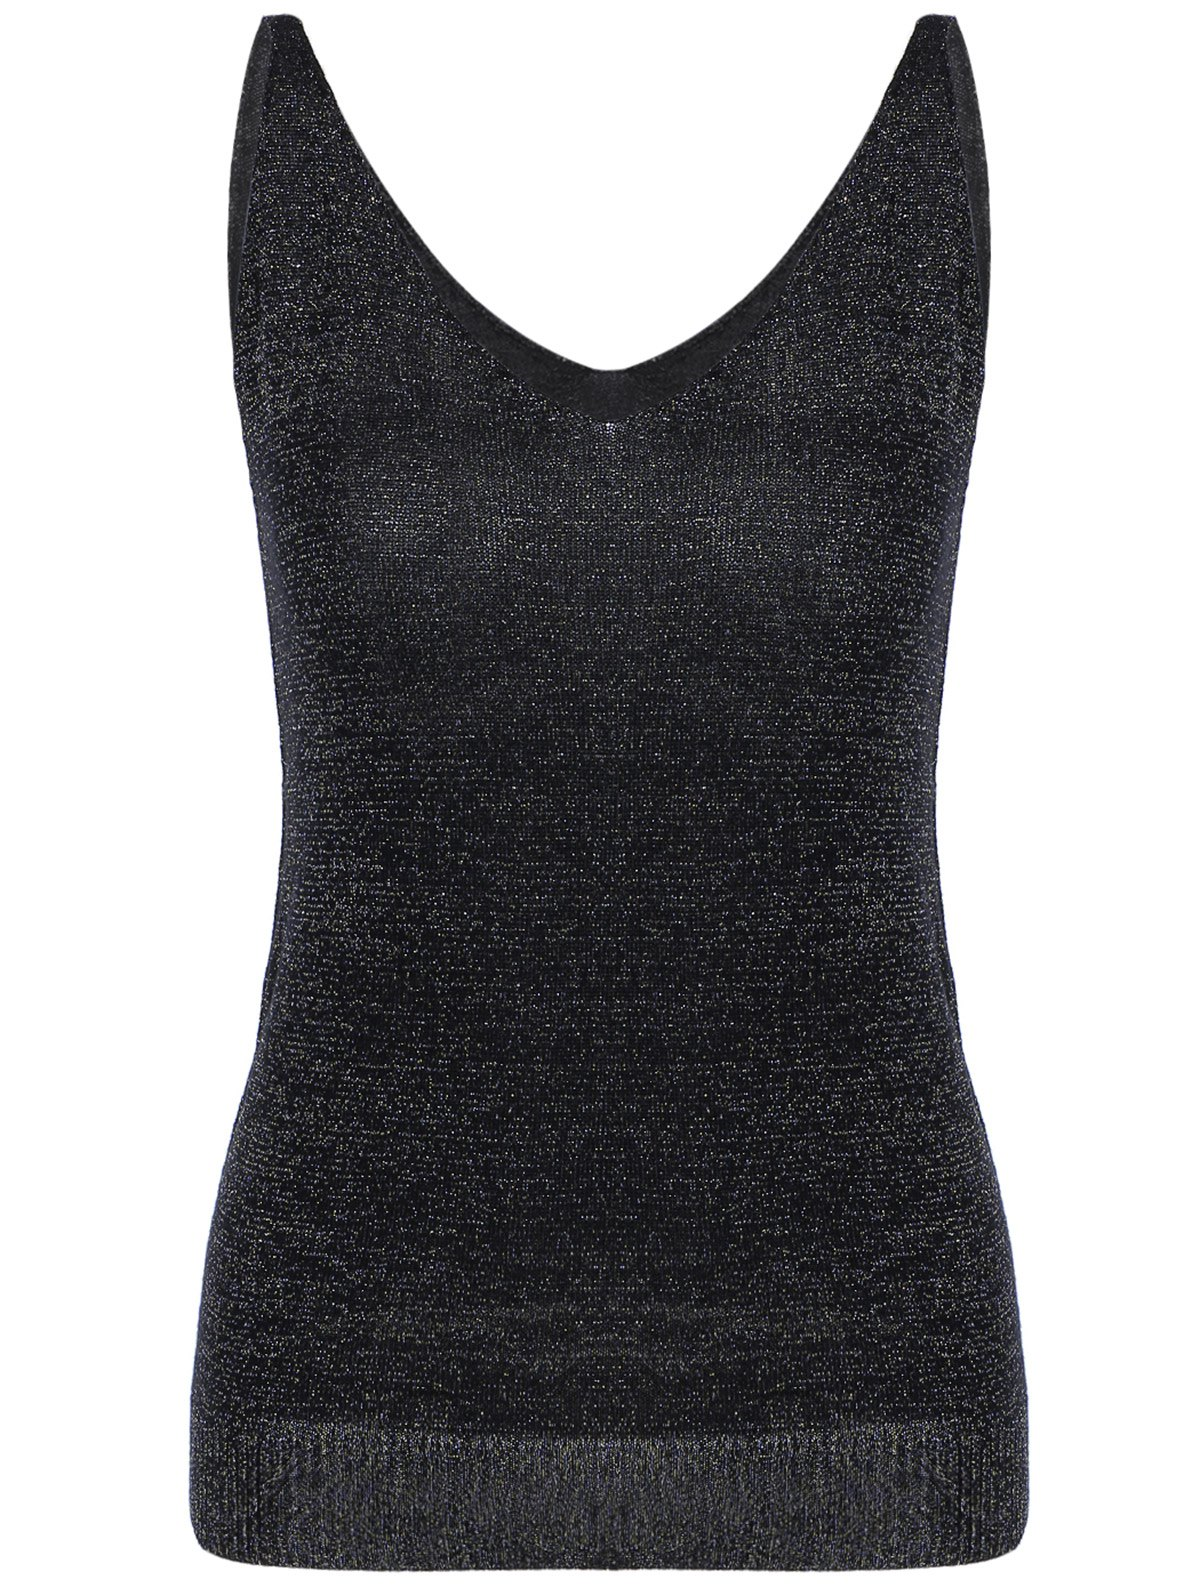 V-Neck Pure Color Knitted Tank Top